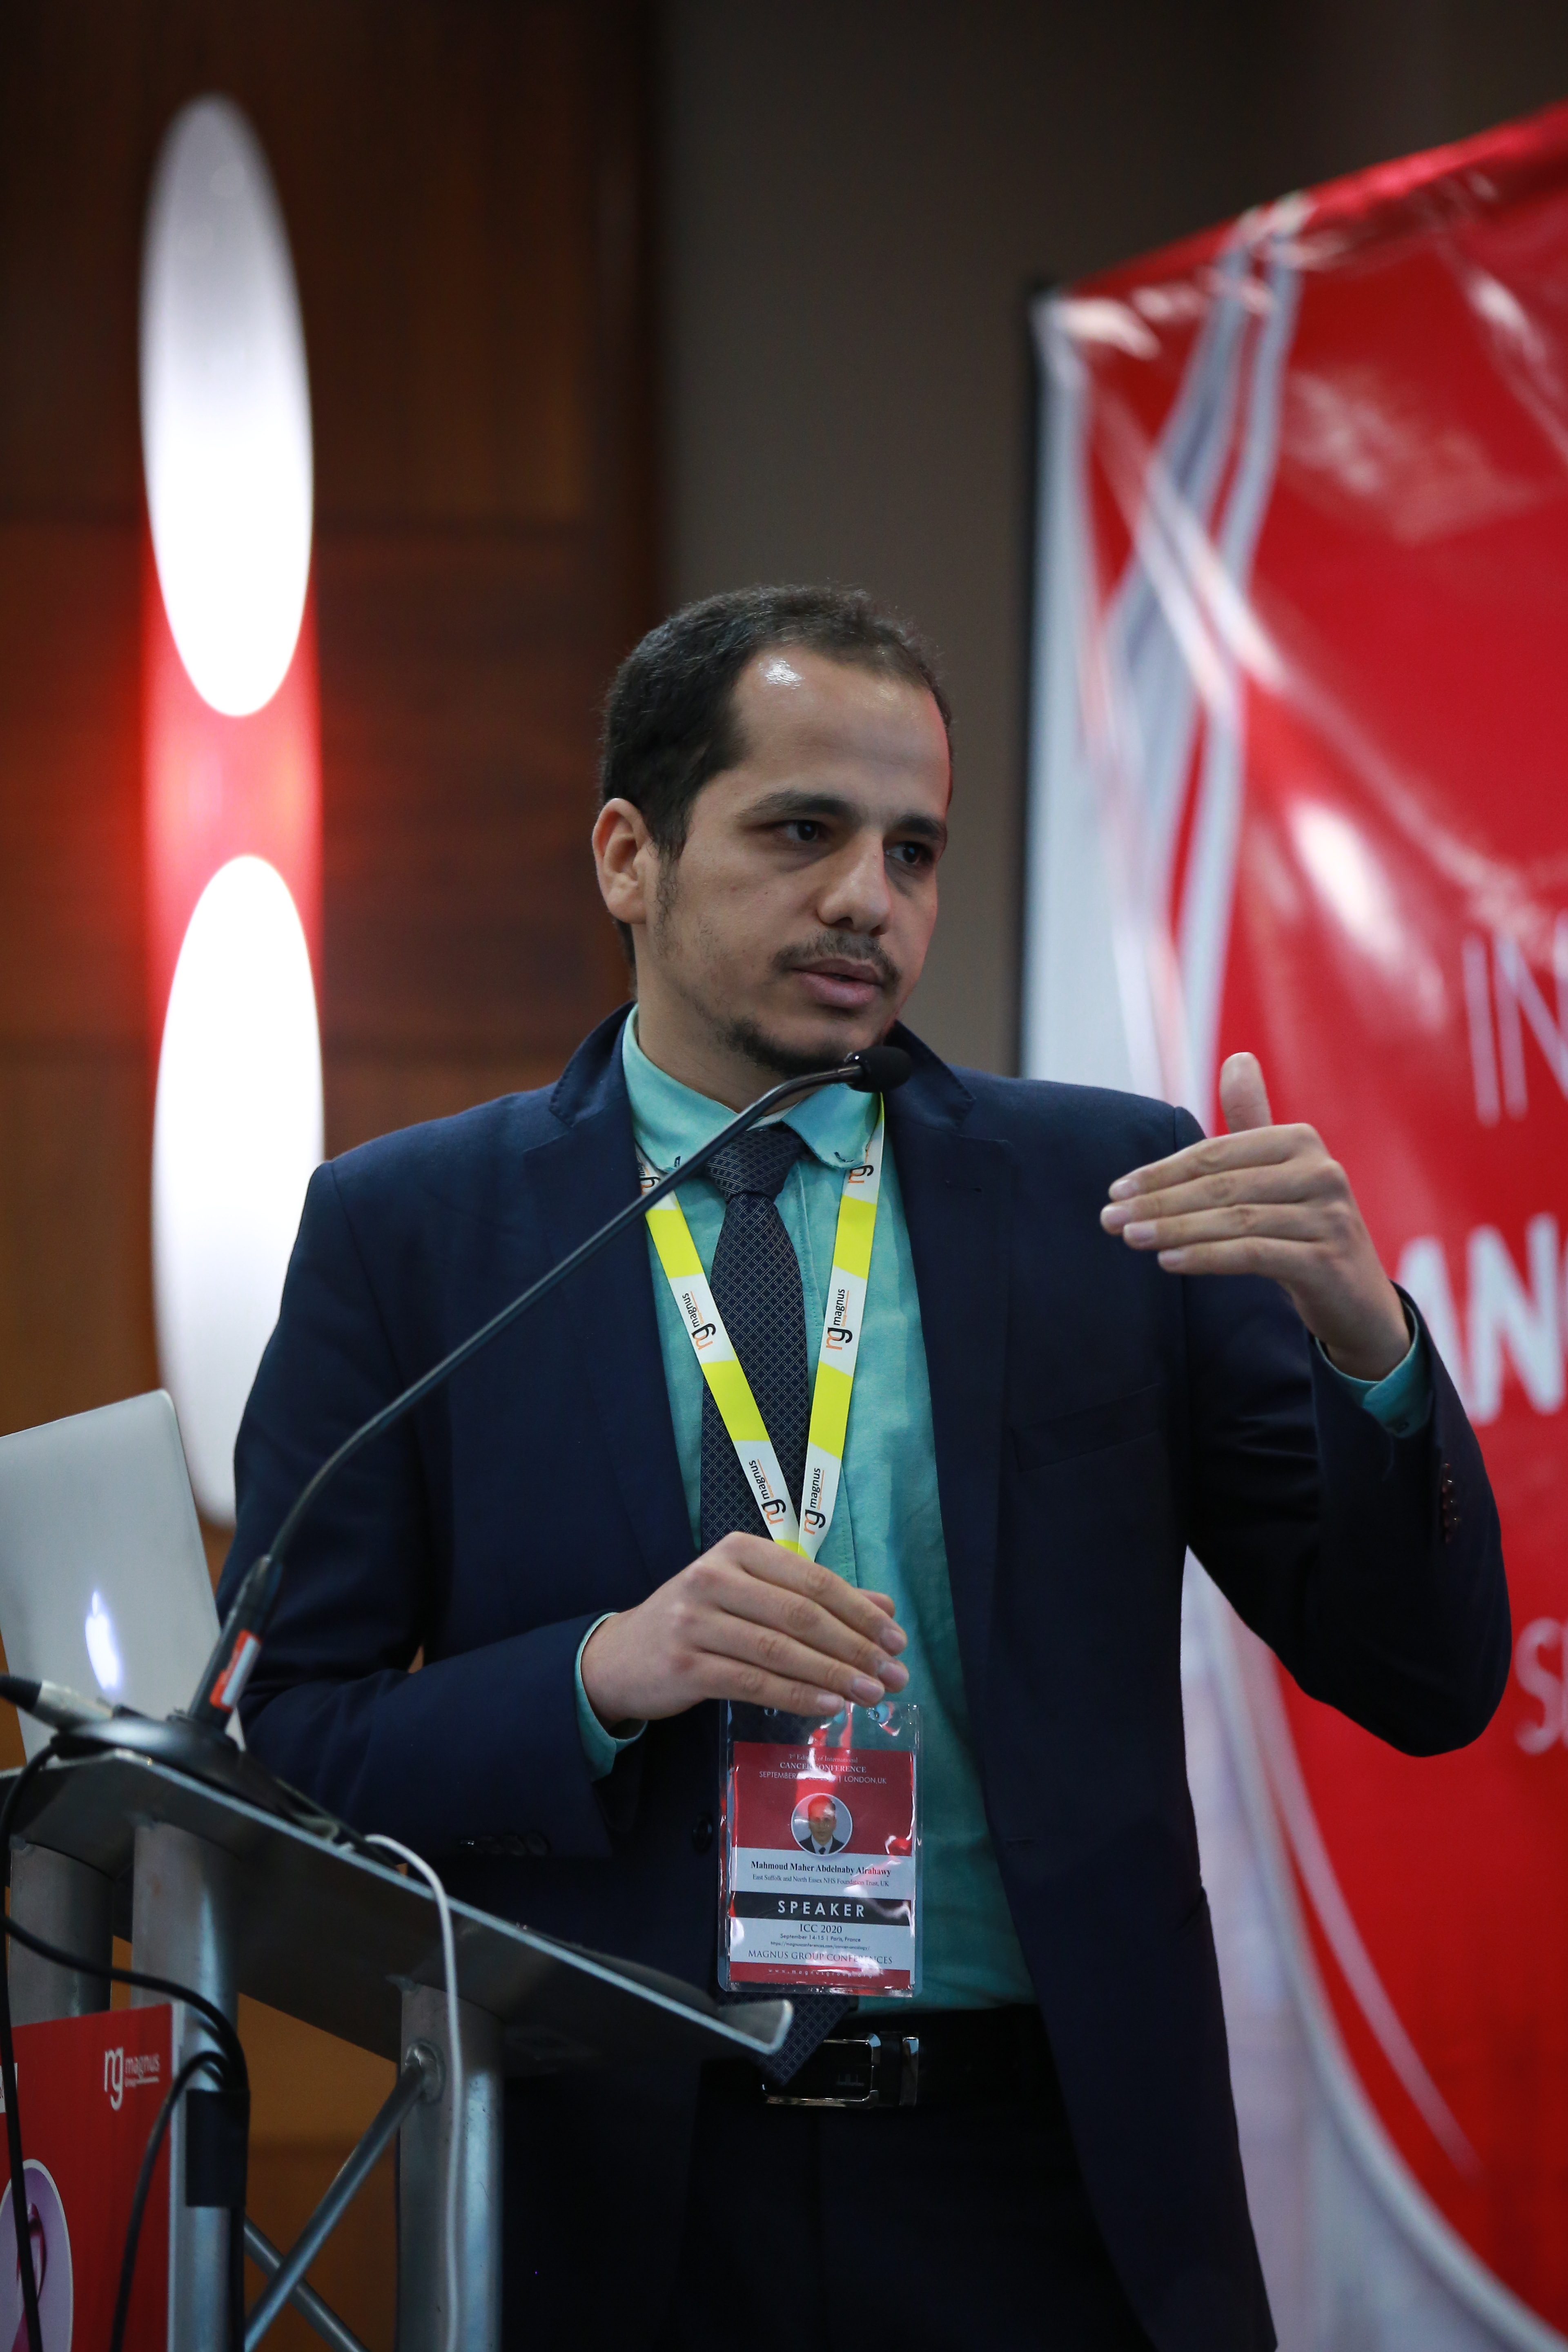 Speaker for Radiology Conferences - Mahmoud Maher Abdelnaby Alrahawy